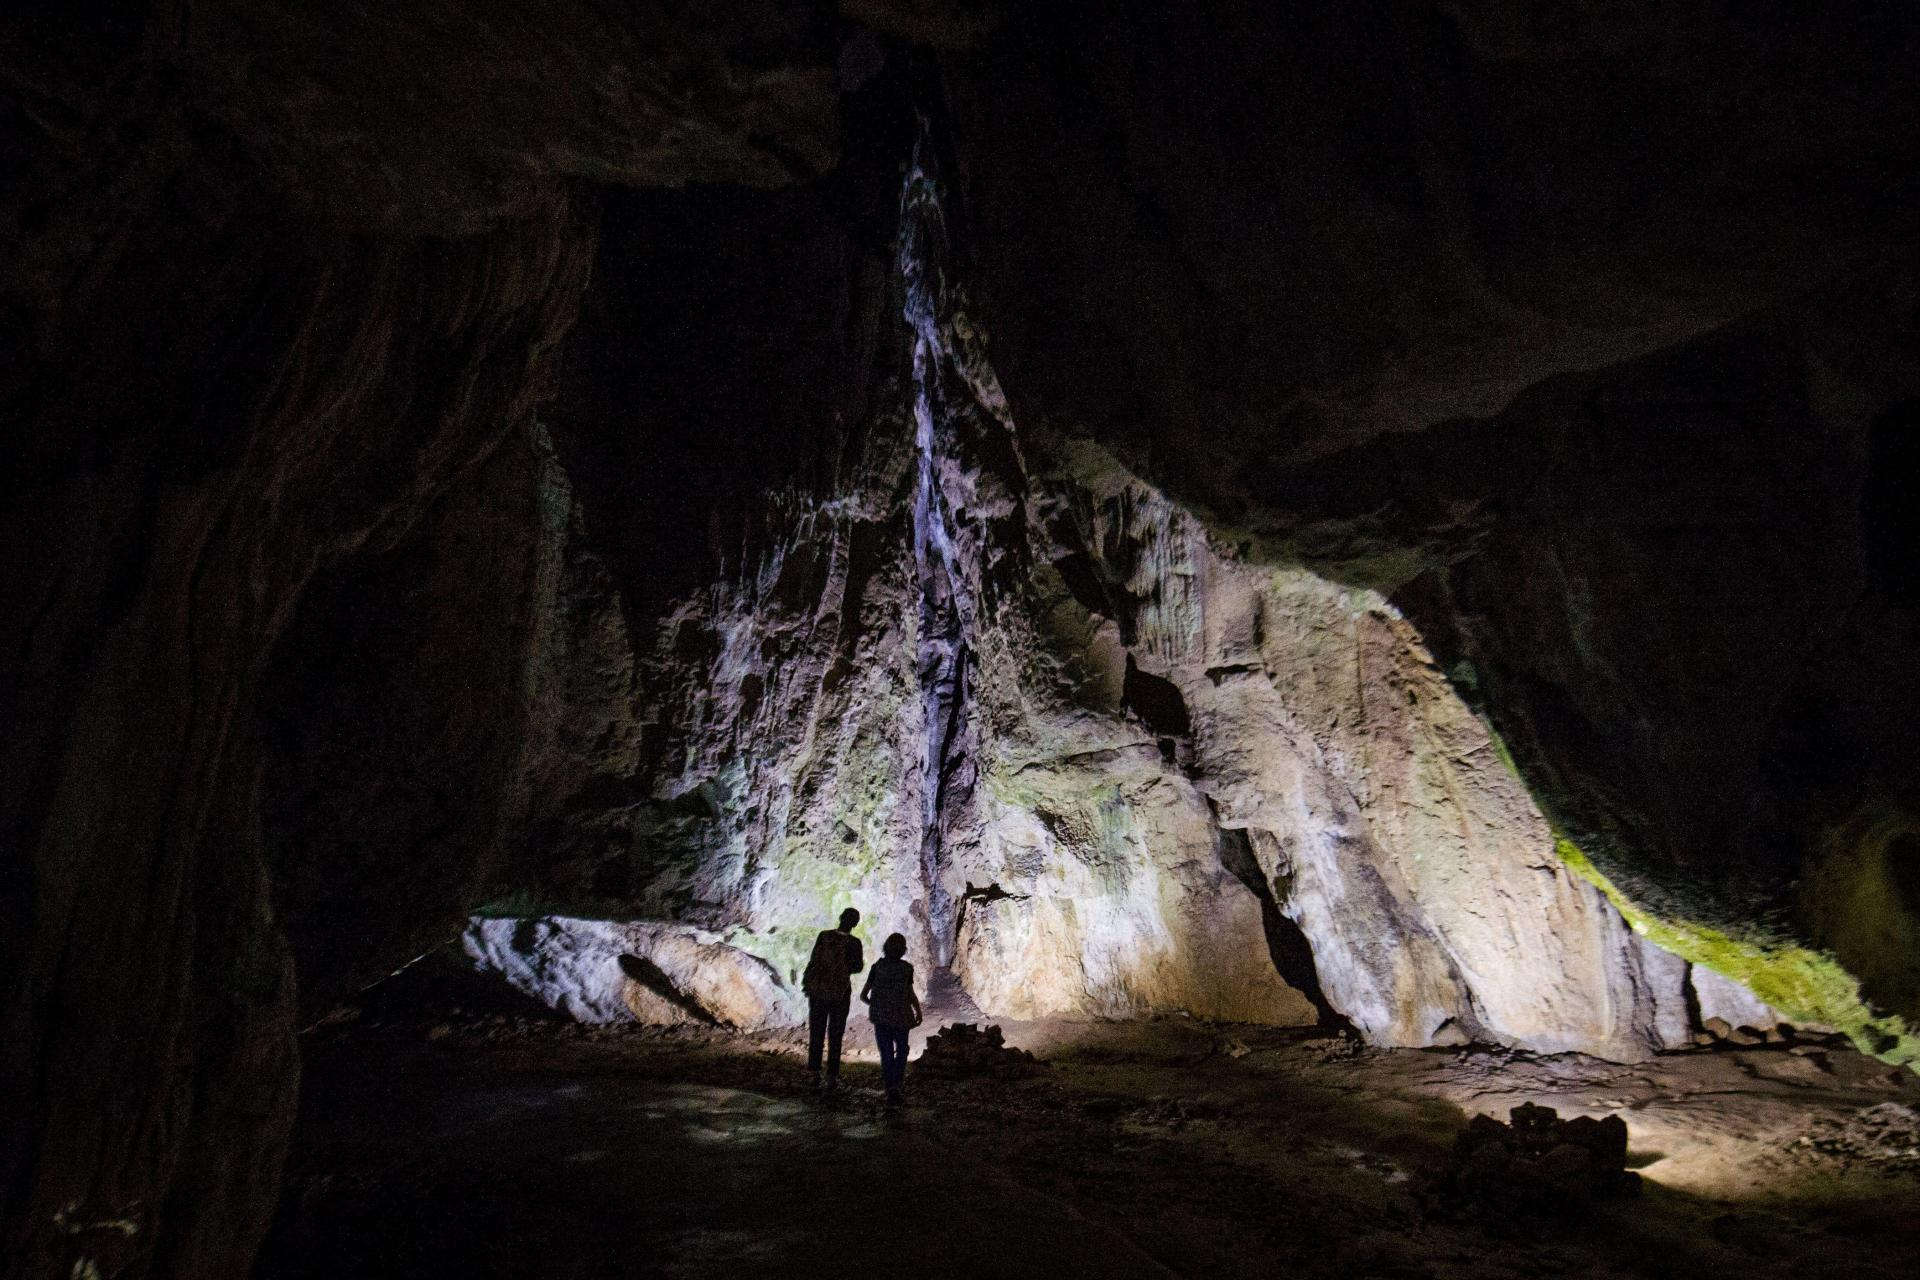 A local guide and visitors walk in the site of the Bacho Kiro Cave, near the city of Dryanovo, northern Bulgaria, on May 13, 2020. Photo: AFP